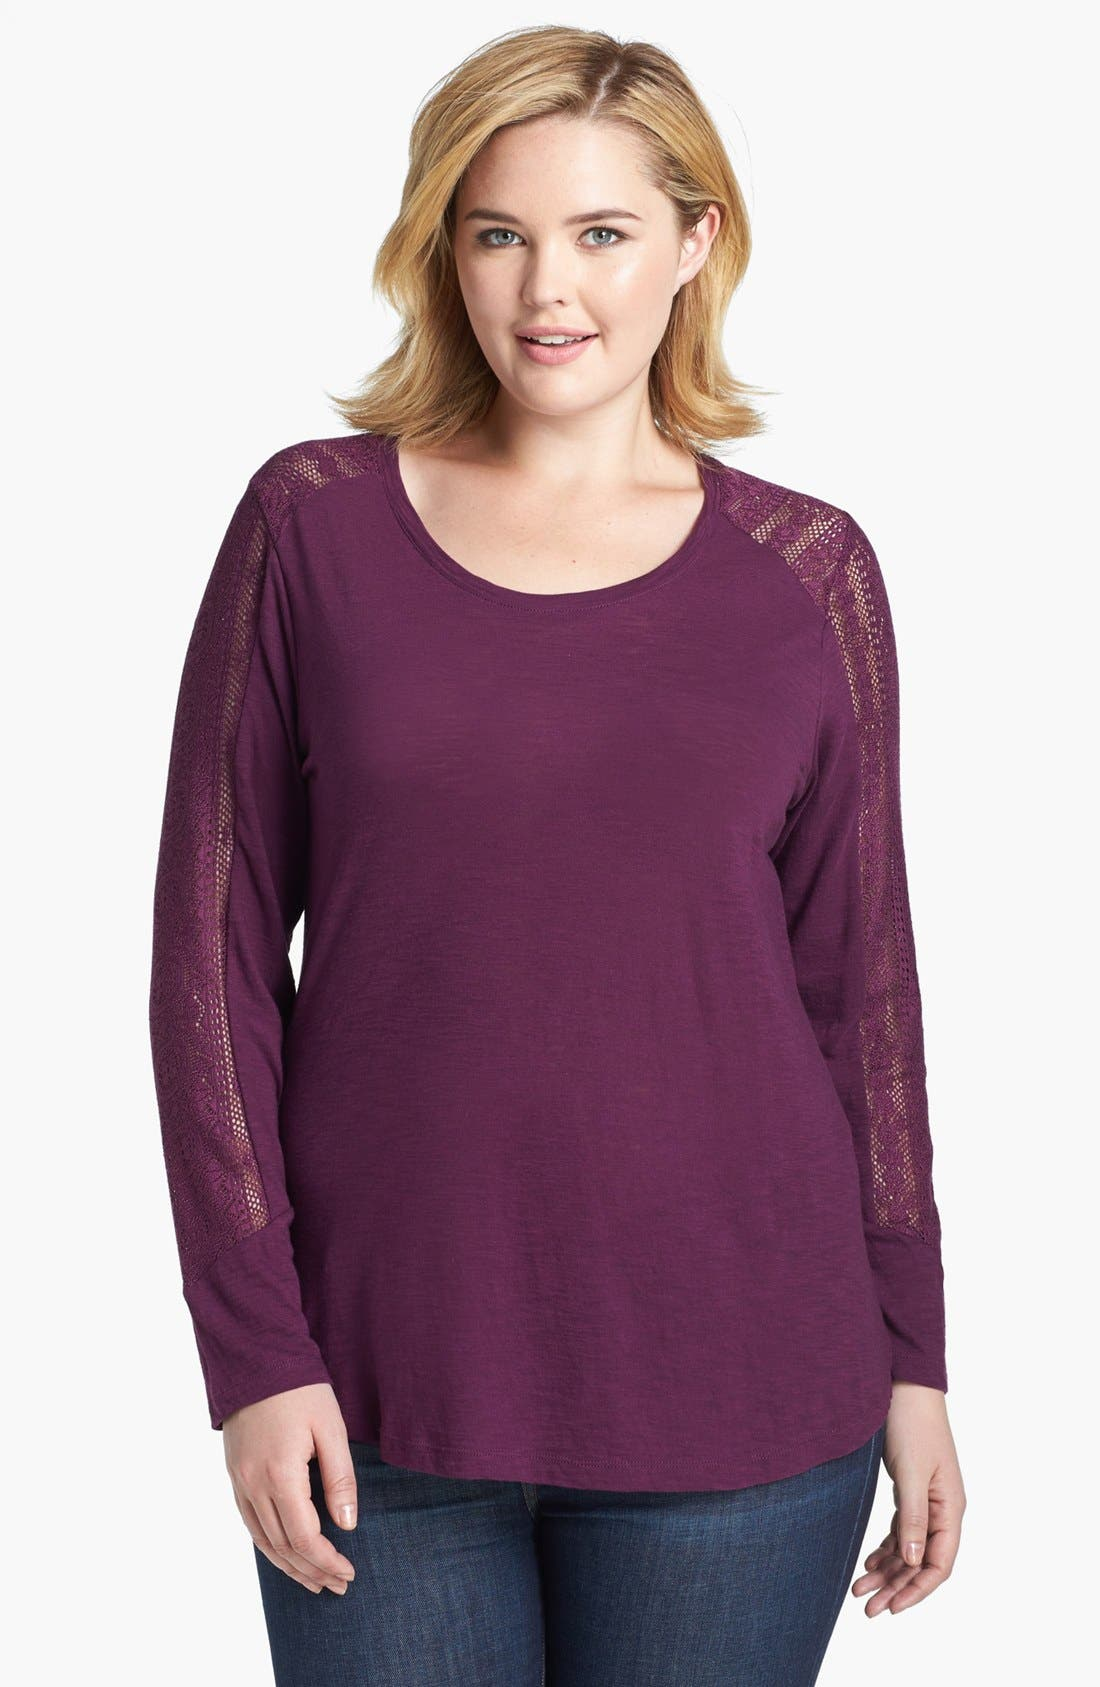 Alternate Image 1 Selected - Lucky Brand 'Bobbi' Lace Inset Top (Plus Size)